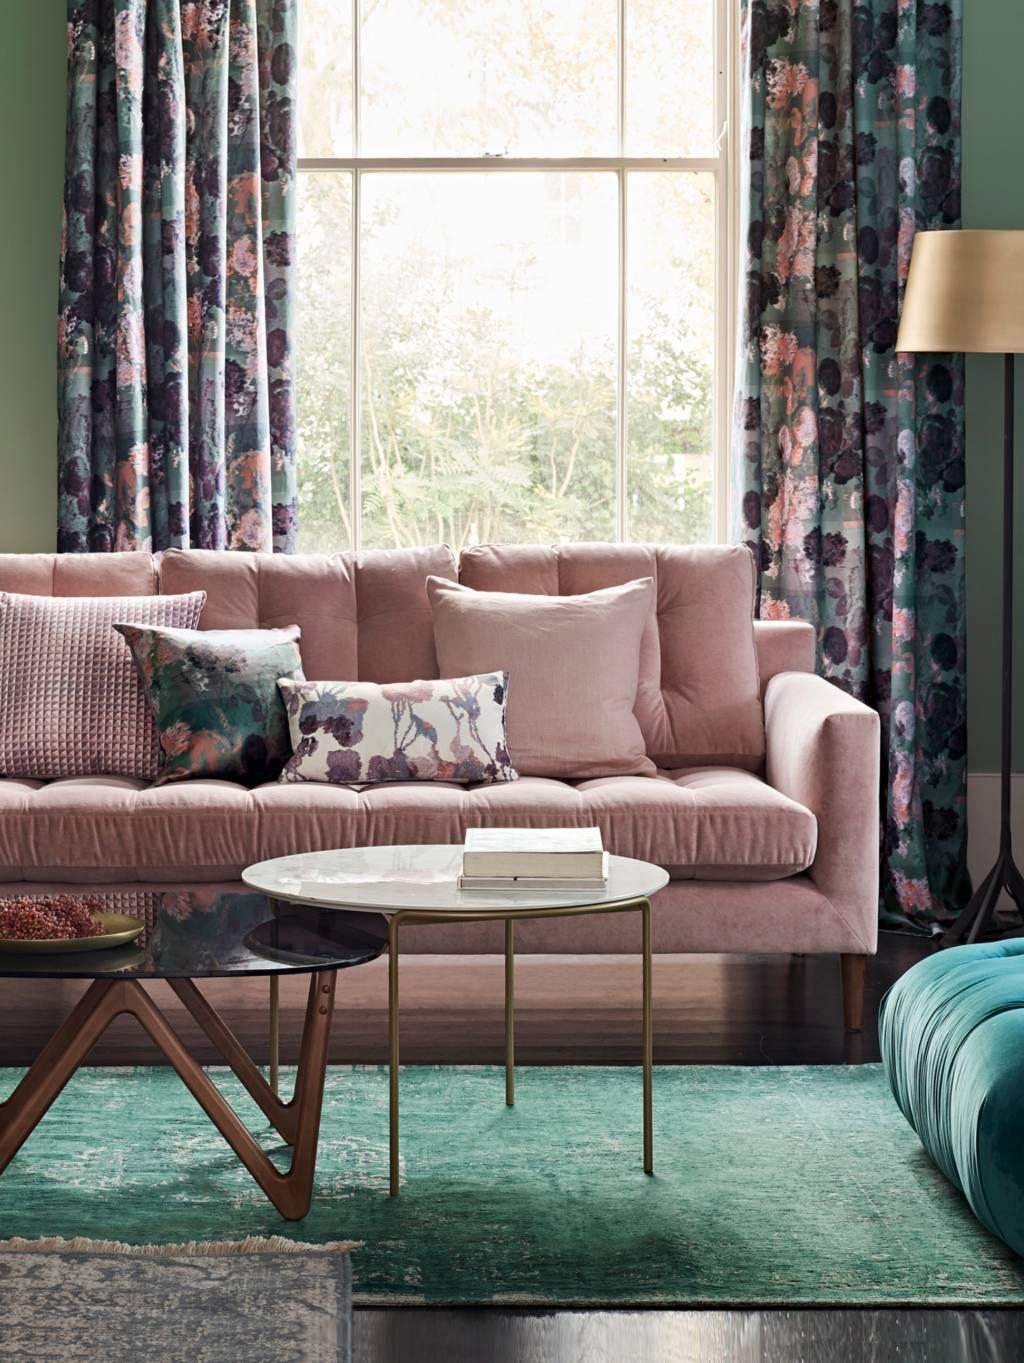 Green living room with pink sofa | Green living room ideas | www.kittyandb.com